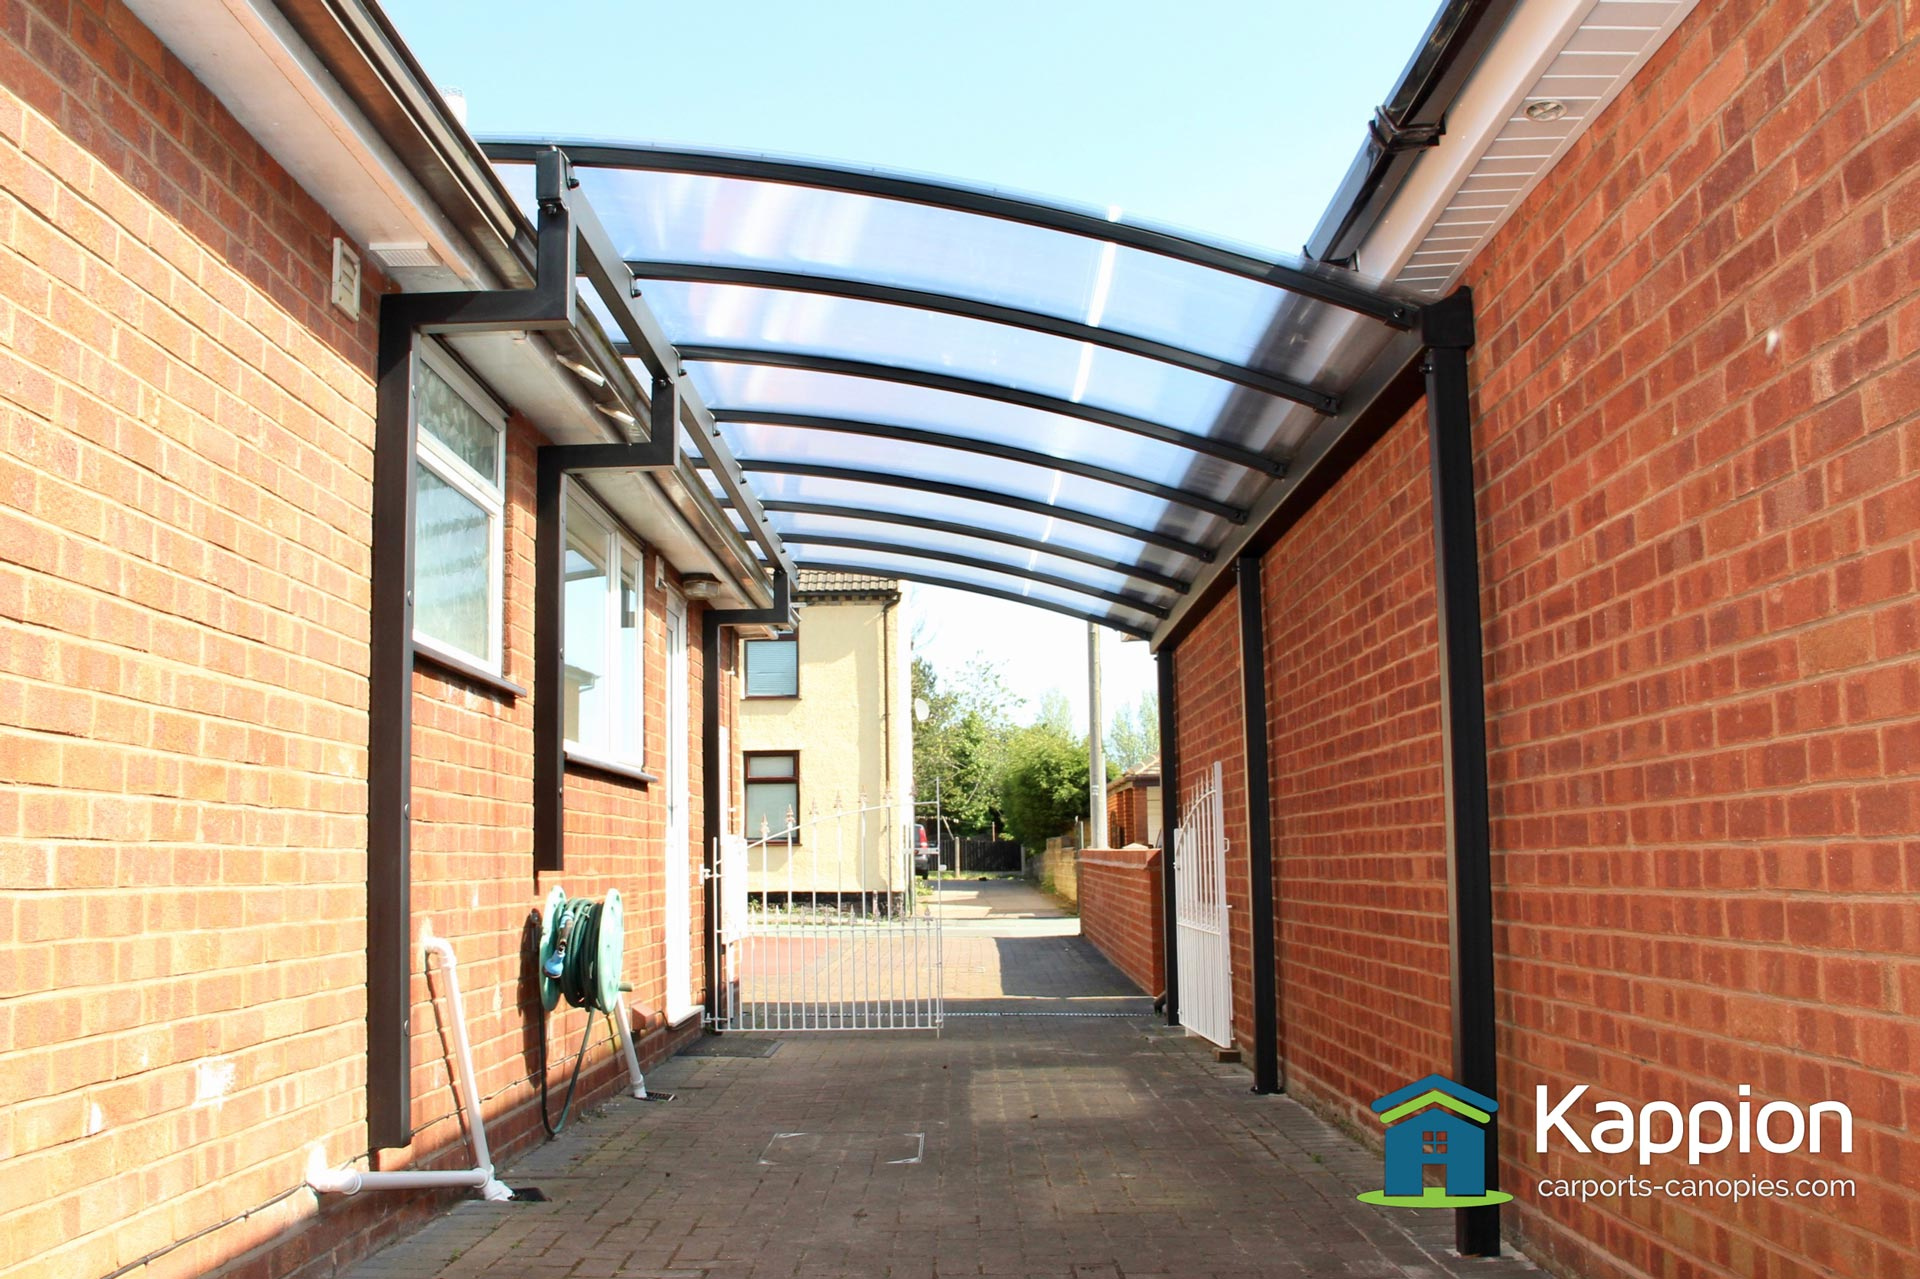 driveway and bungalow carports kappion carports canopies